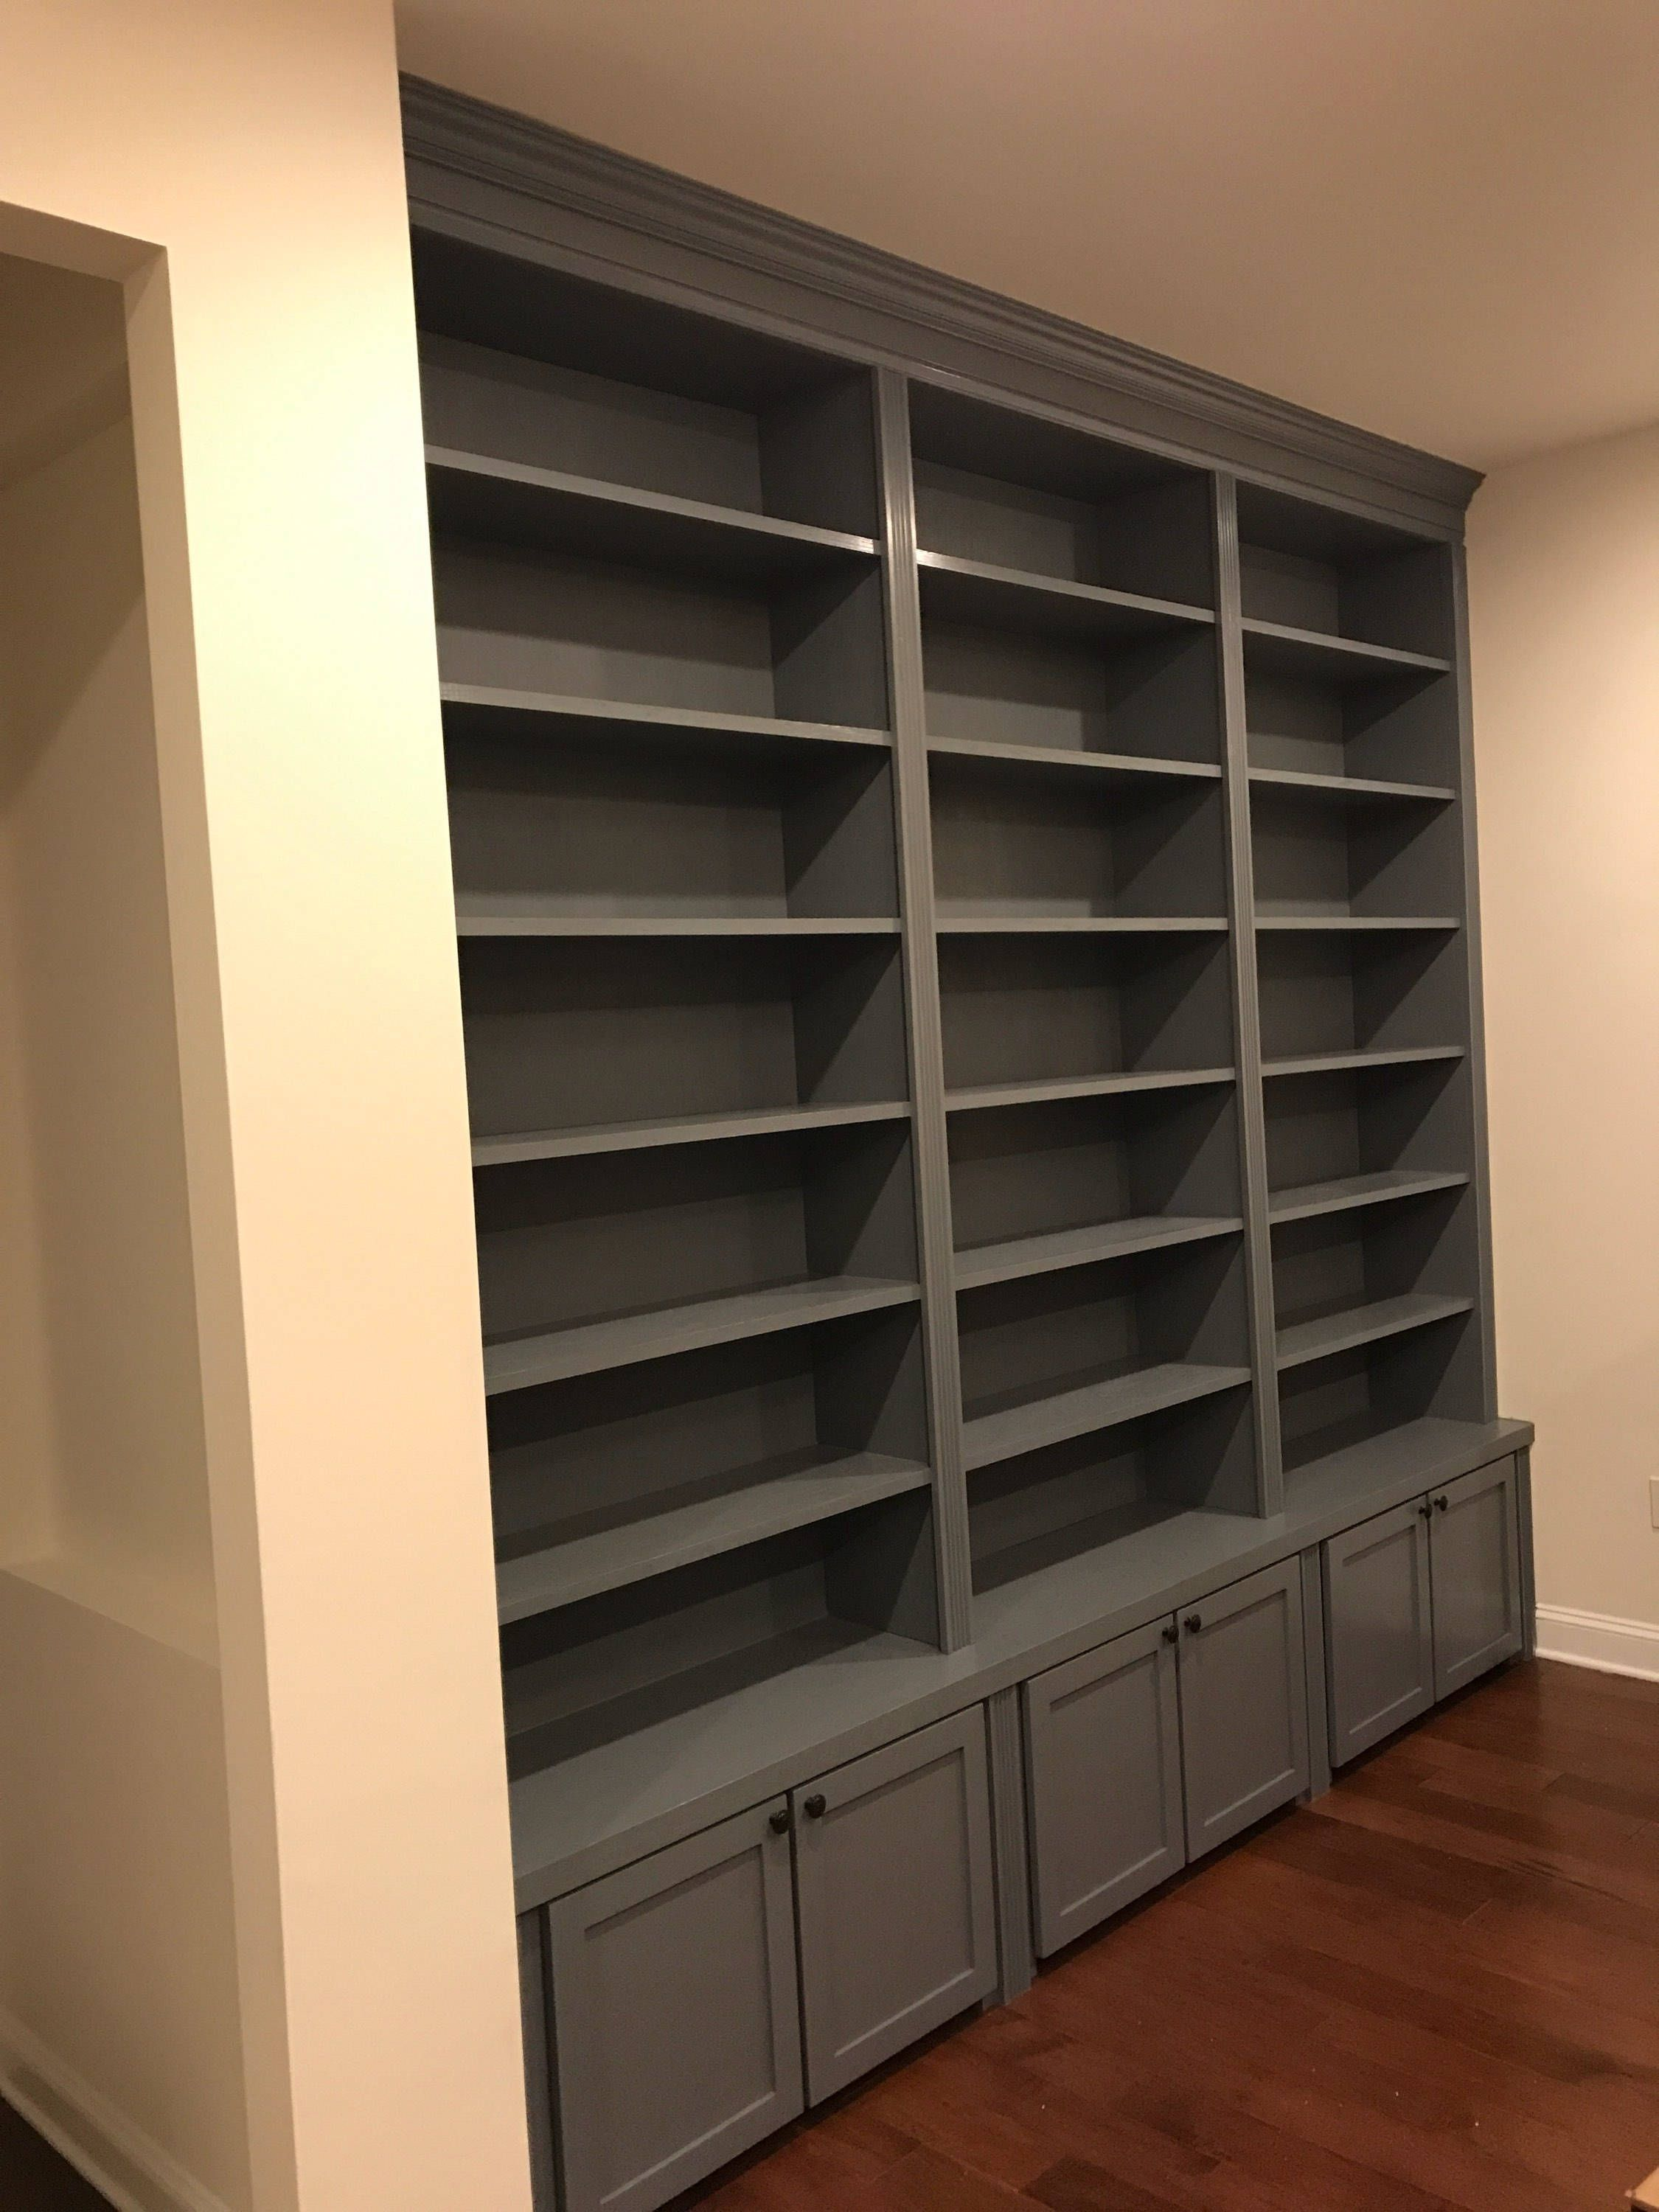 Book Shelves En 2020 Diseno De Estanteria Closet Para